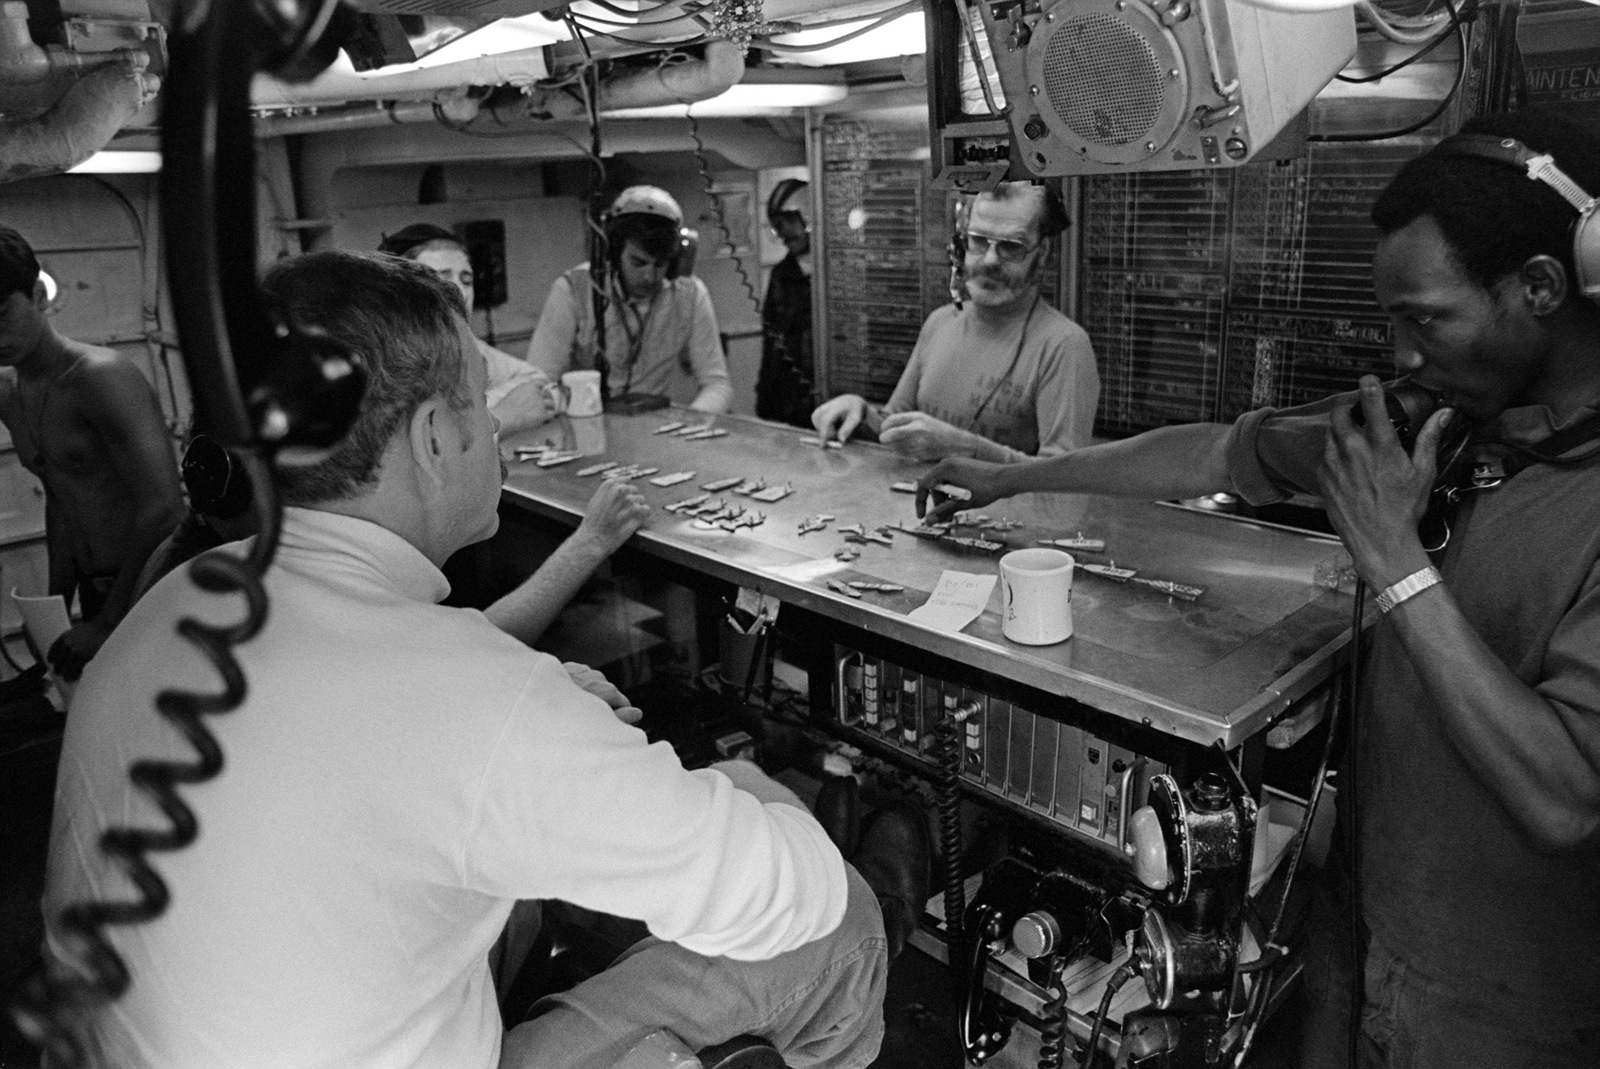 Crewman inside the flight deck control center aboard the aircraft carrier USS KITTY HAWK (CV 63) use a table to simulate the arrangement of aircraft on the carrier's flight deck